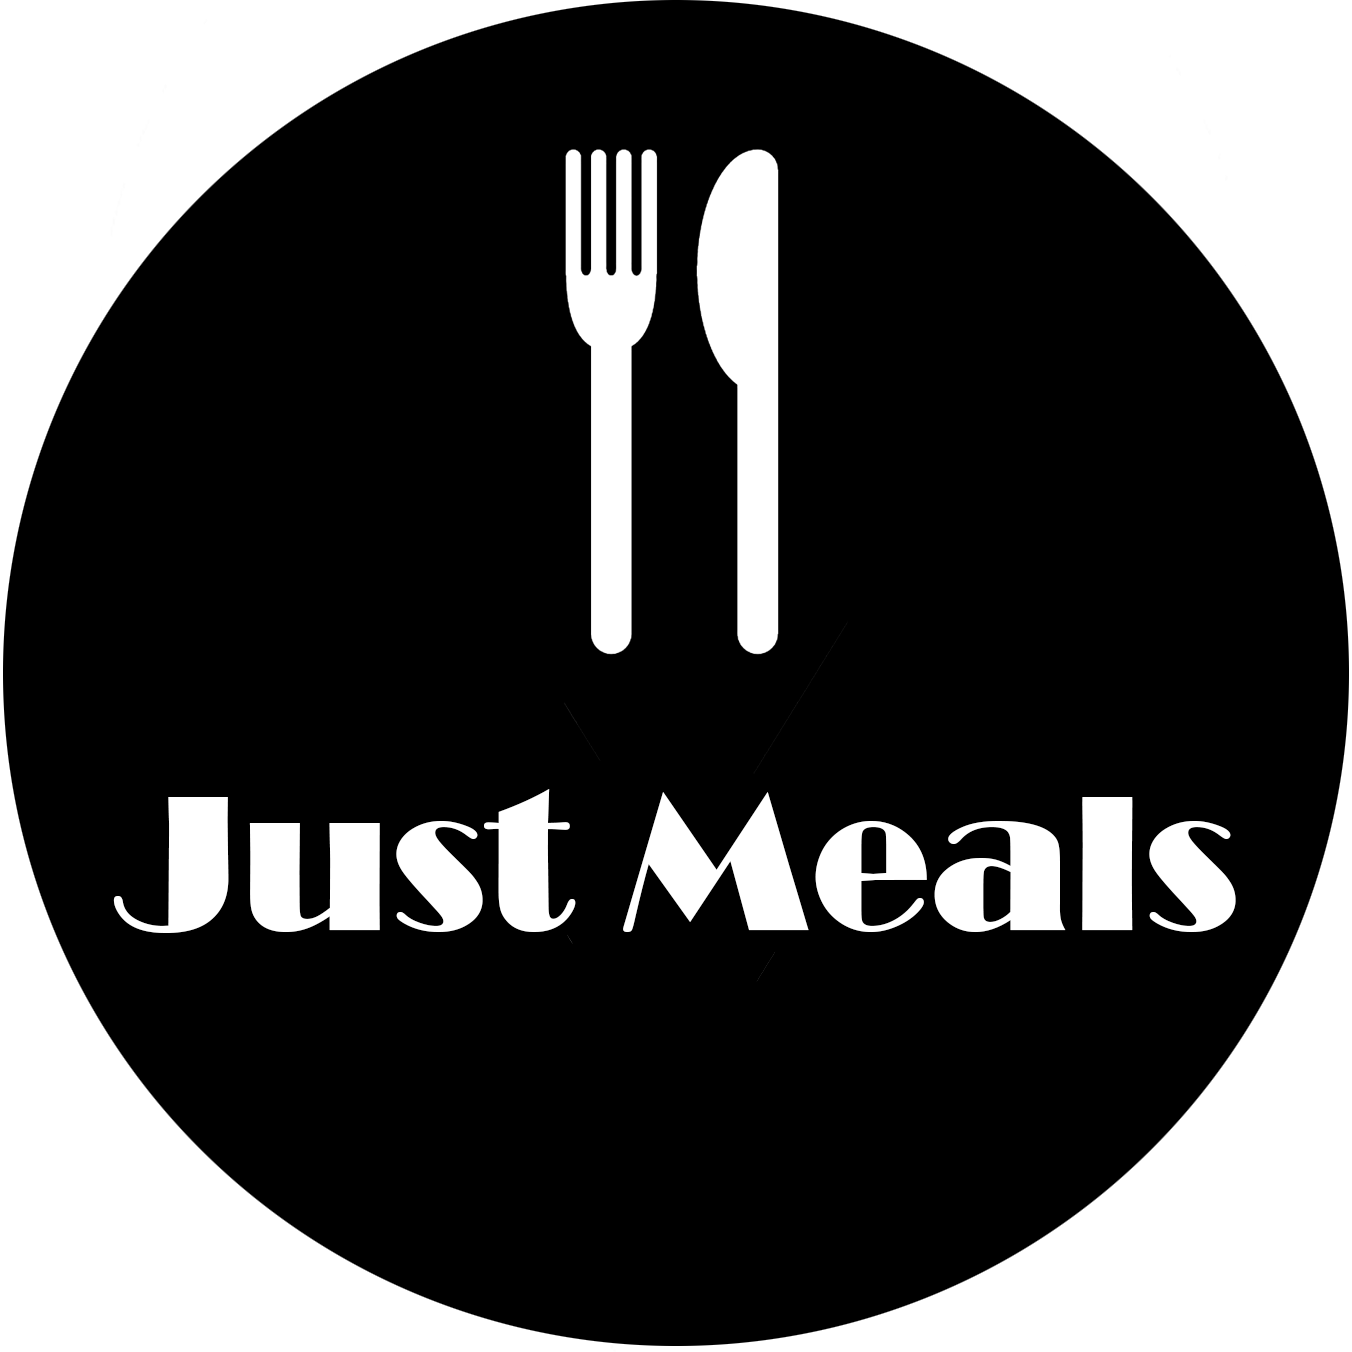 Just meals